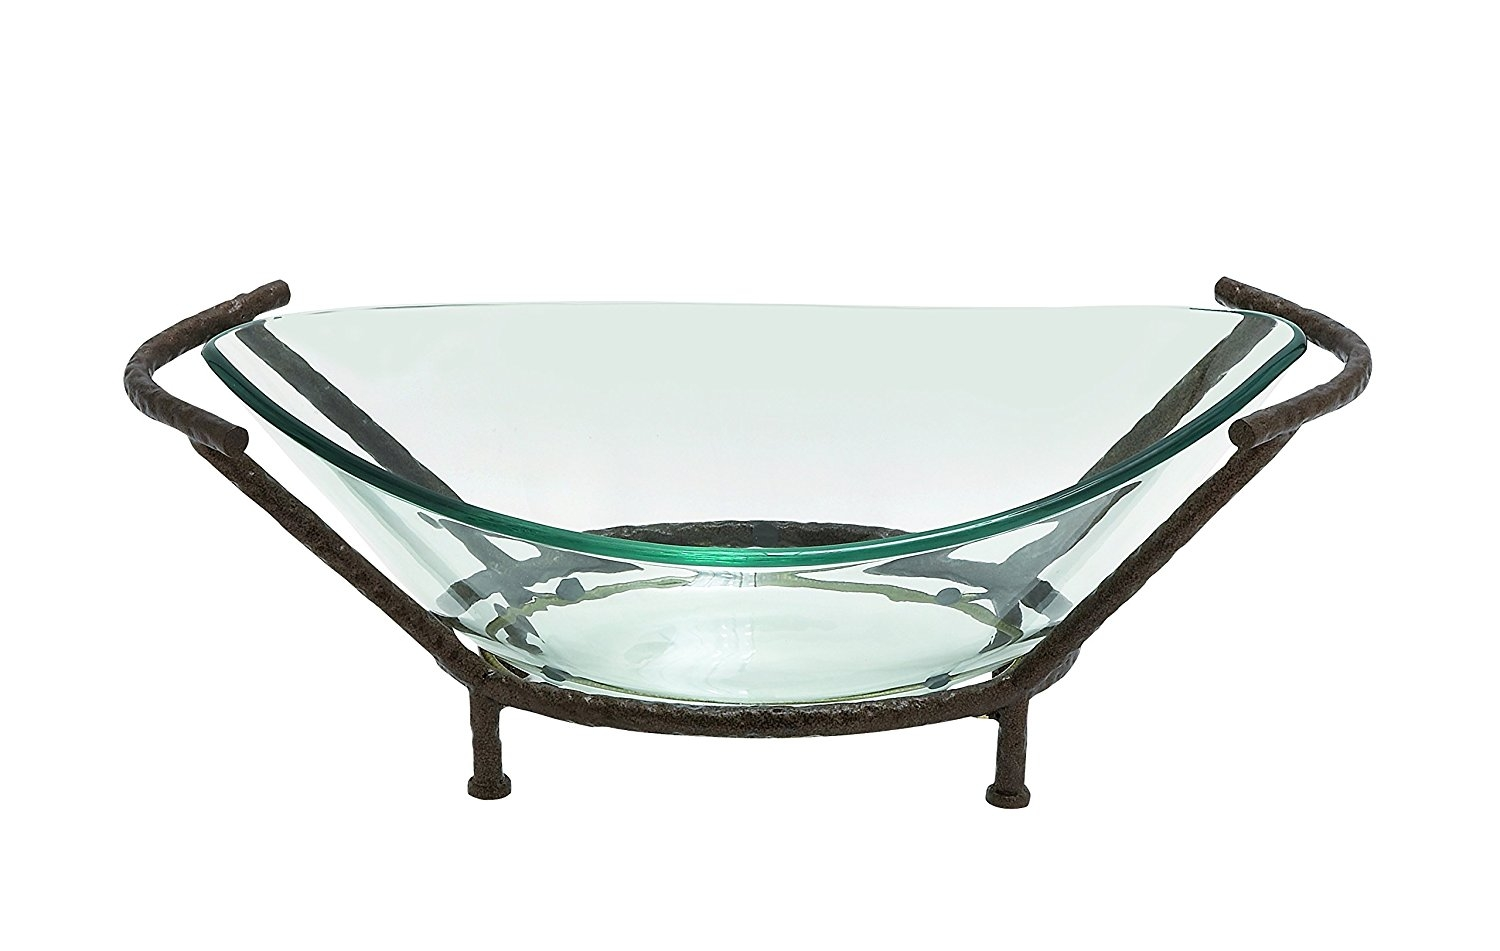 Woodland Imports 68541 Oval-Shaped Glass with Metal Stand by Benzara